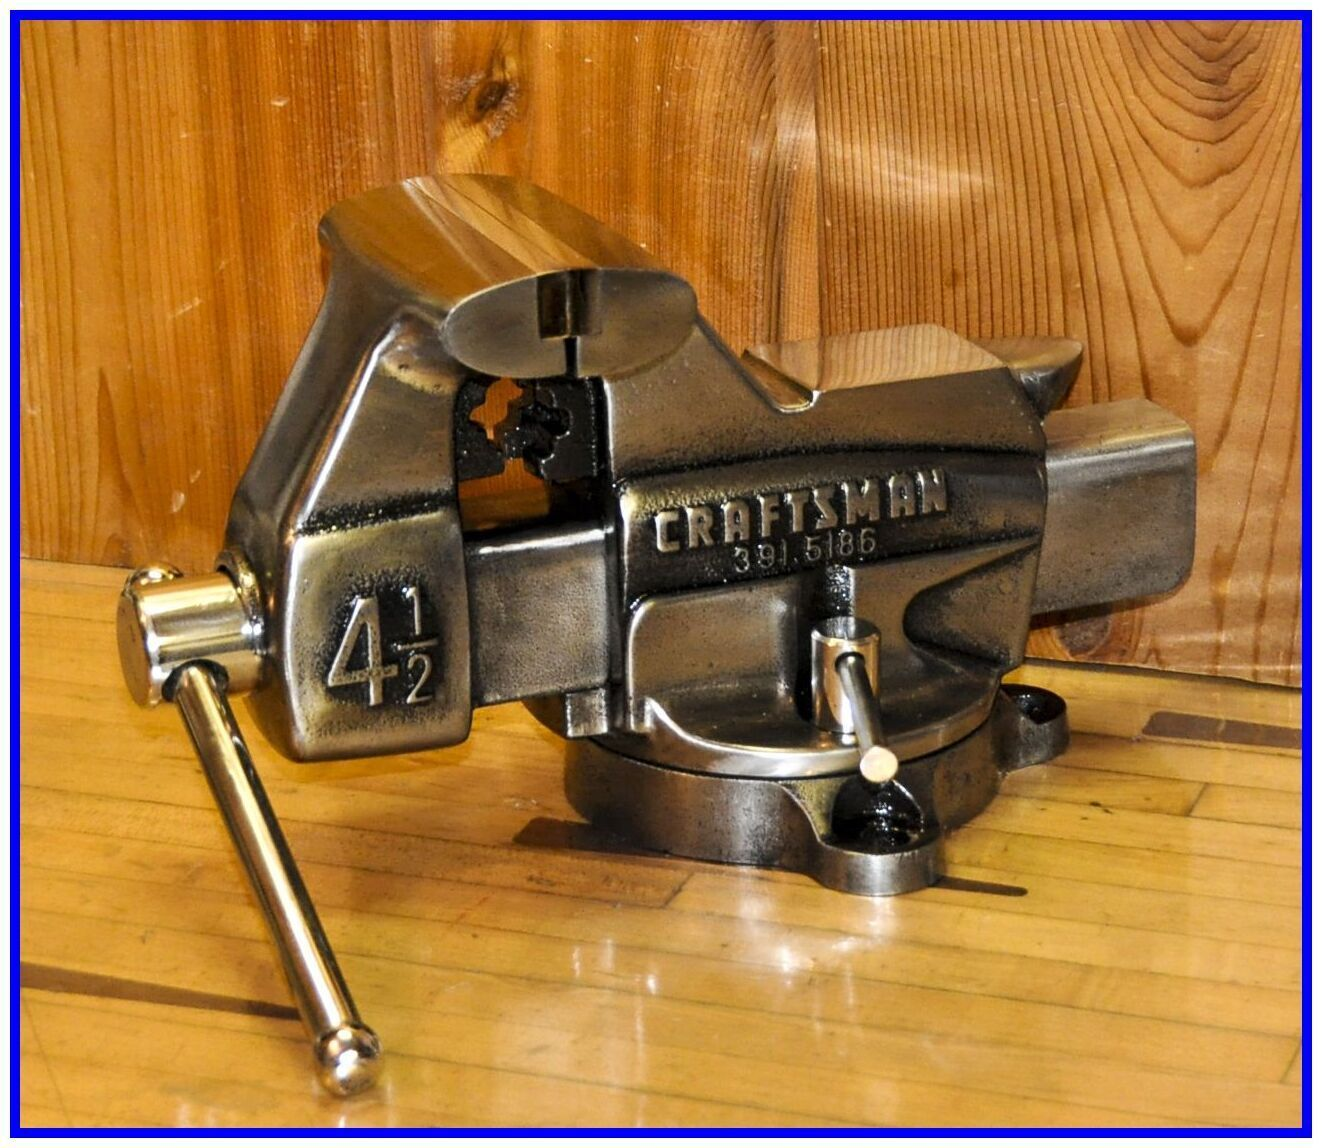 73 Reference Of Old Wood Bench Vise In 2020 Wood Bench Bench Vise Bench